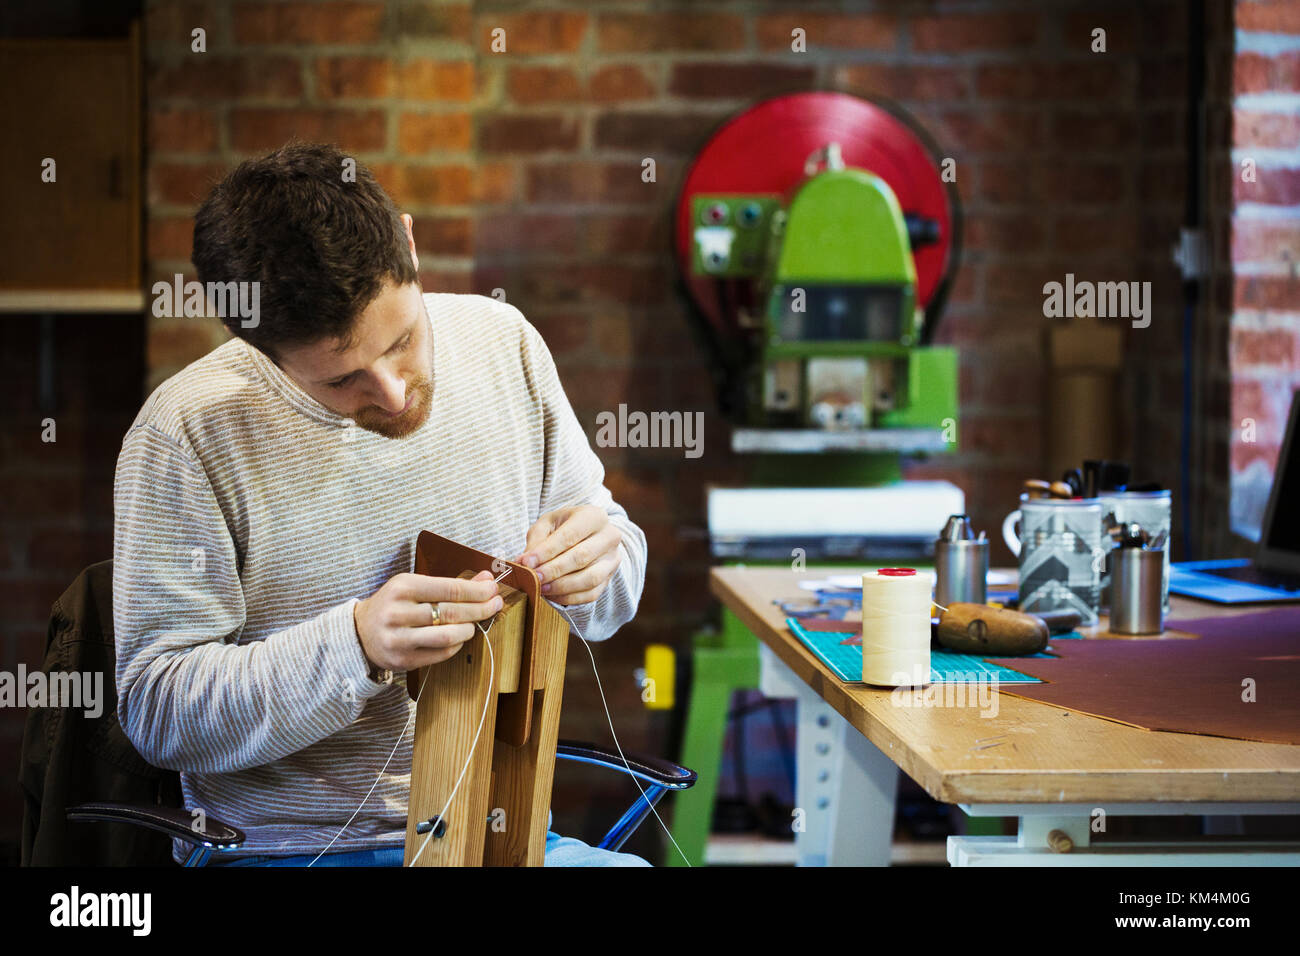 A craftsman in a workshop, threading cord or twine through a small handmade object. - Stock Image